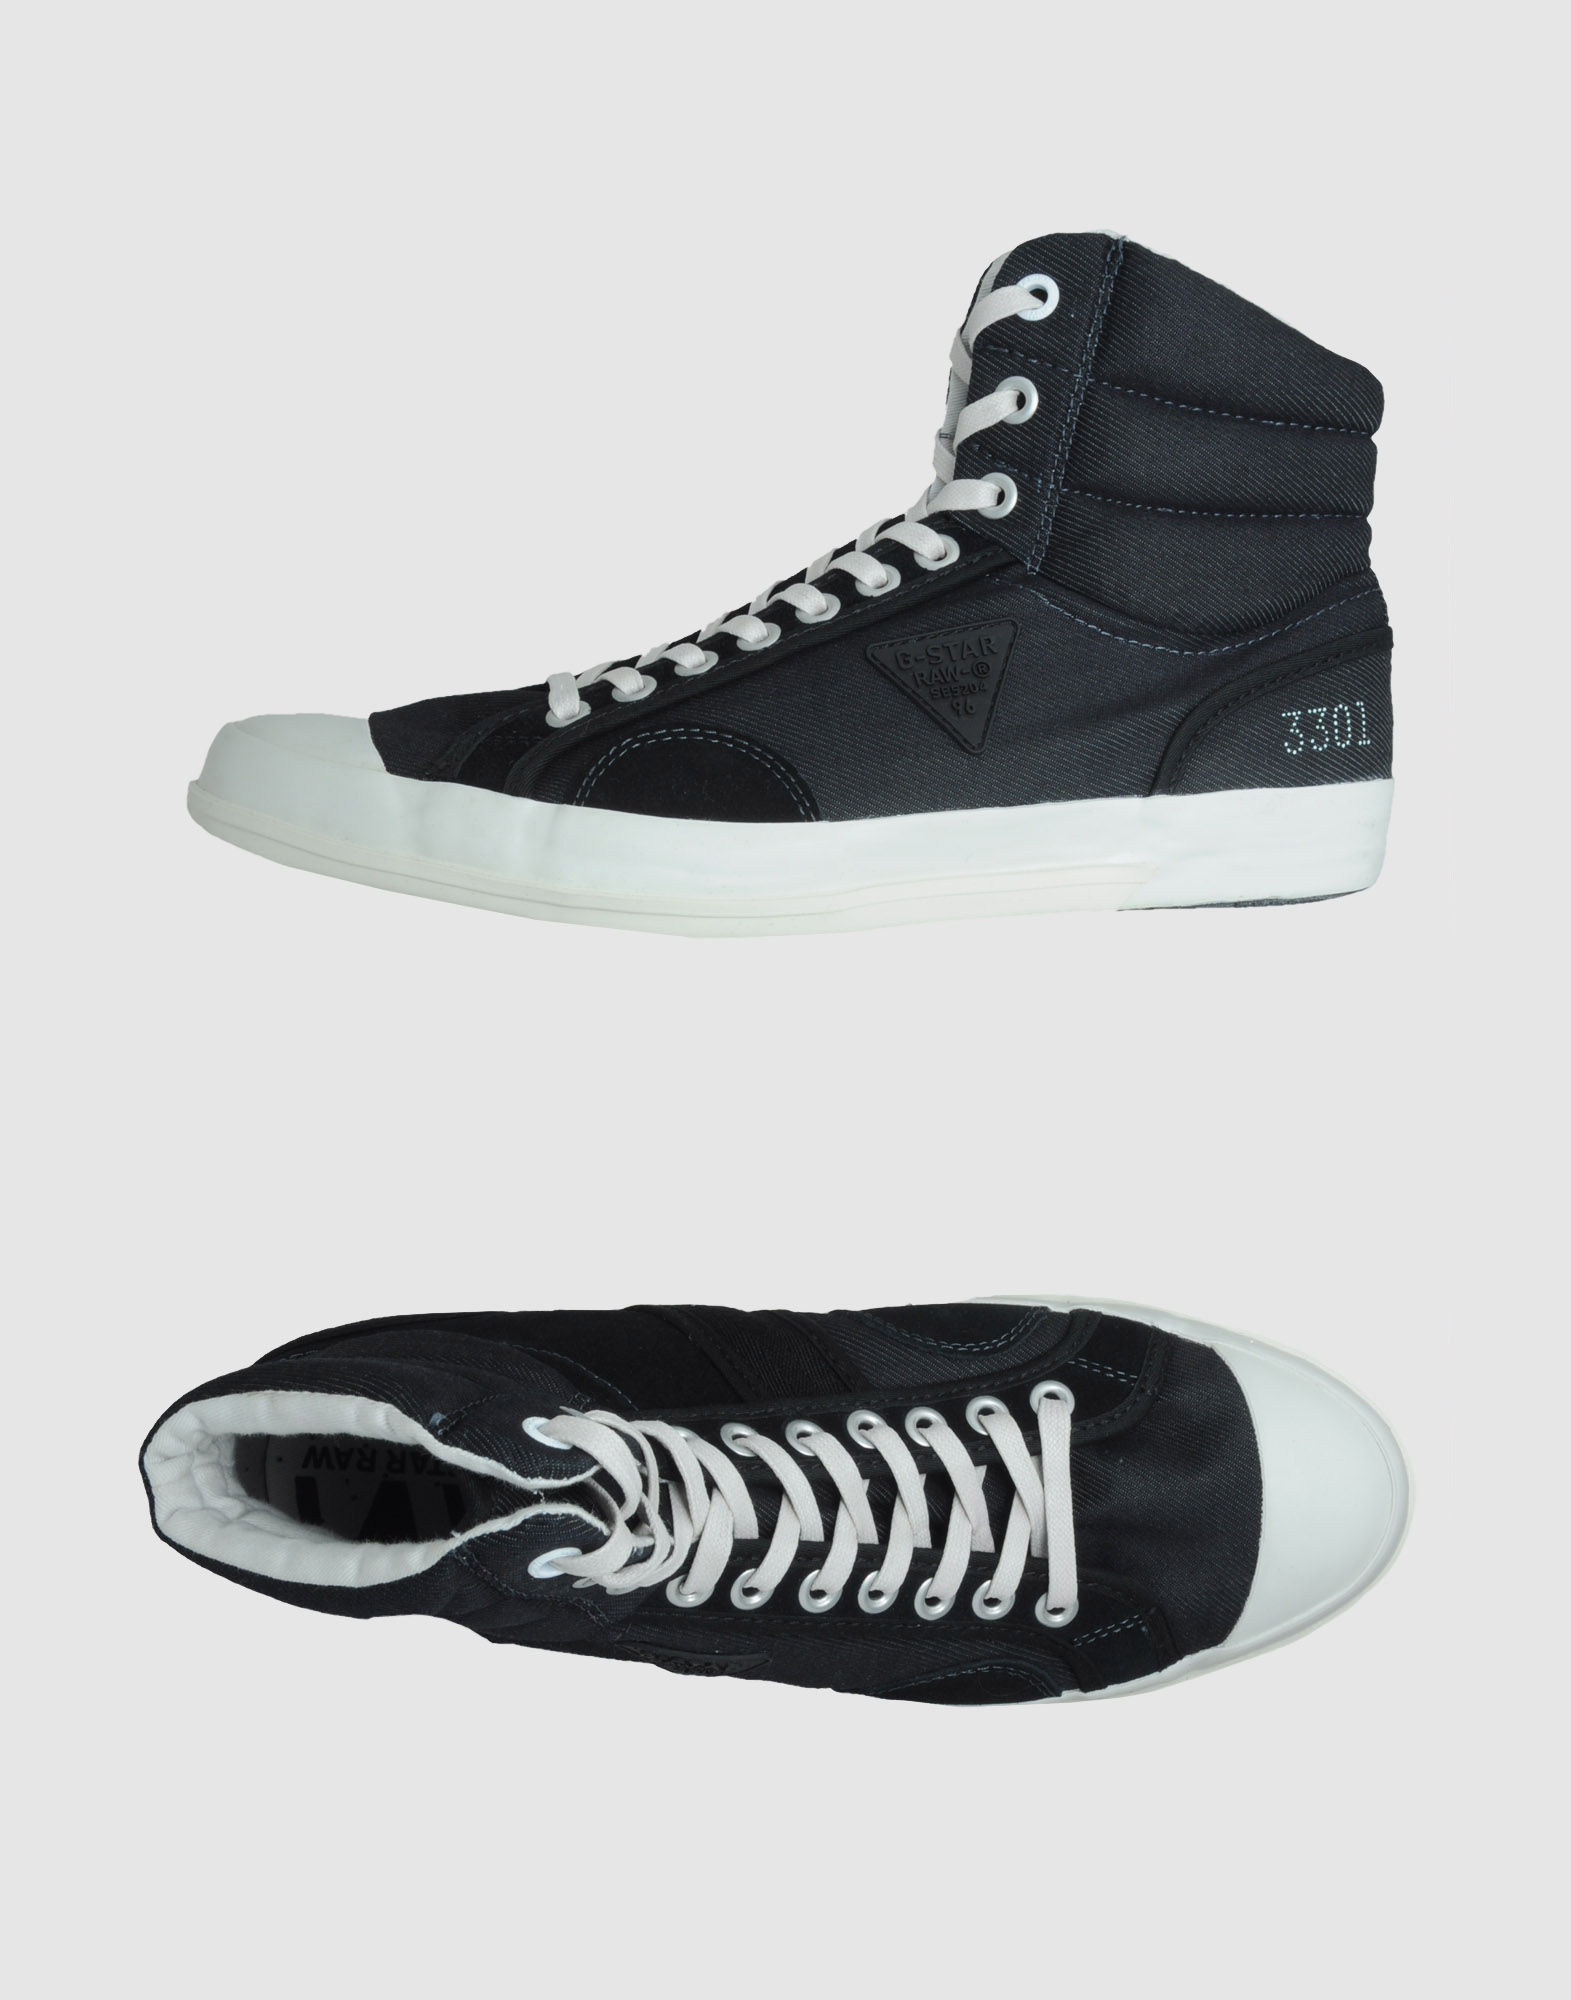 g star raw high top sneaker in black for men lyst. Black Bedroom Furniture Sets. Home Design Ideas